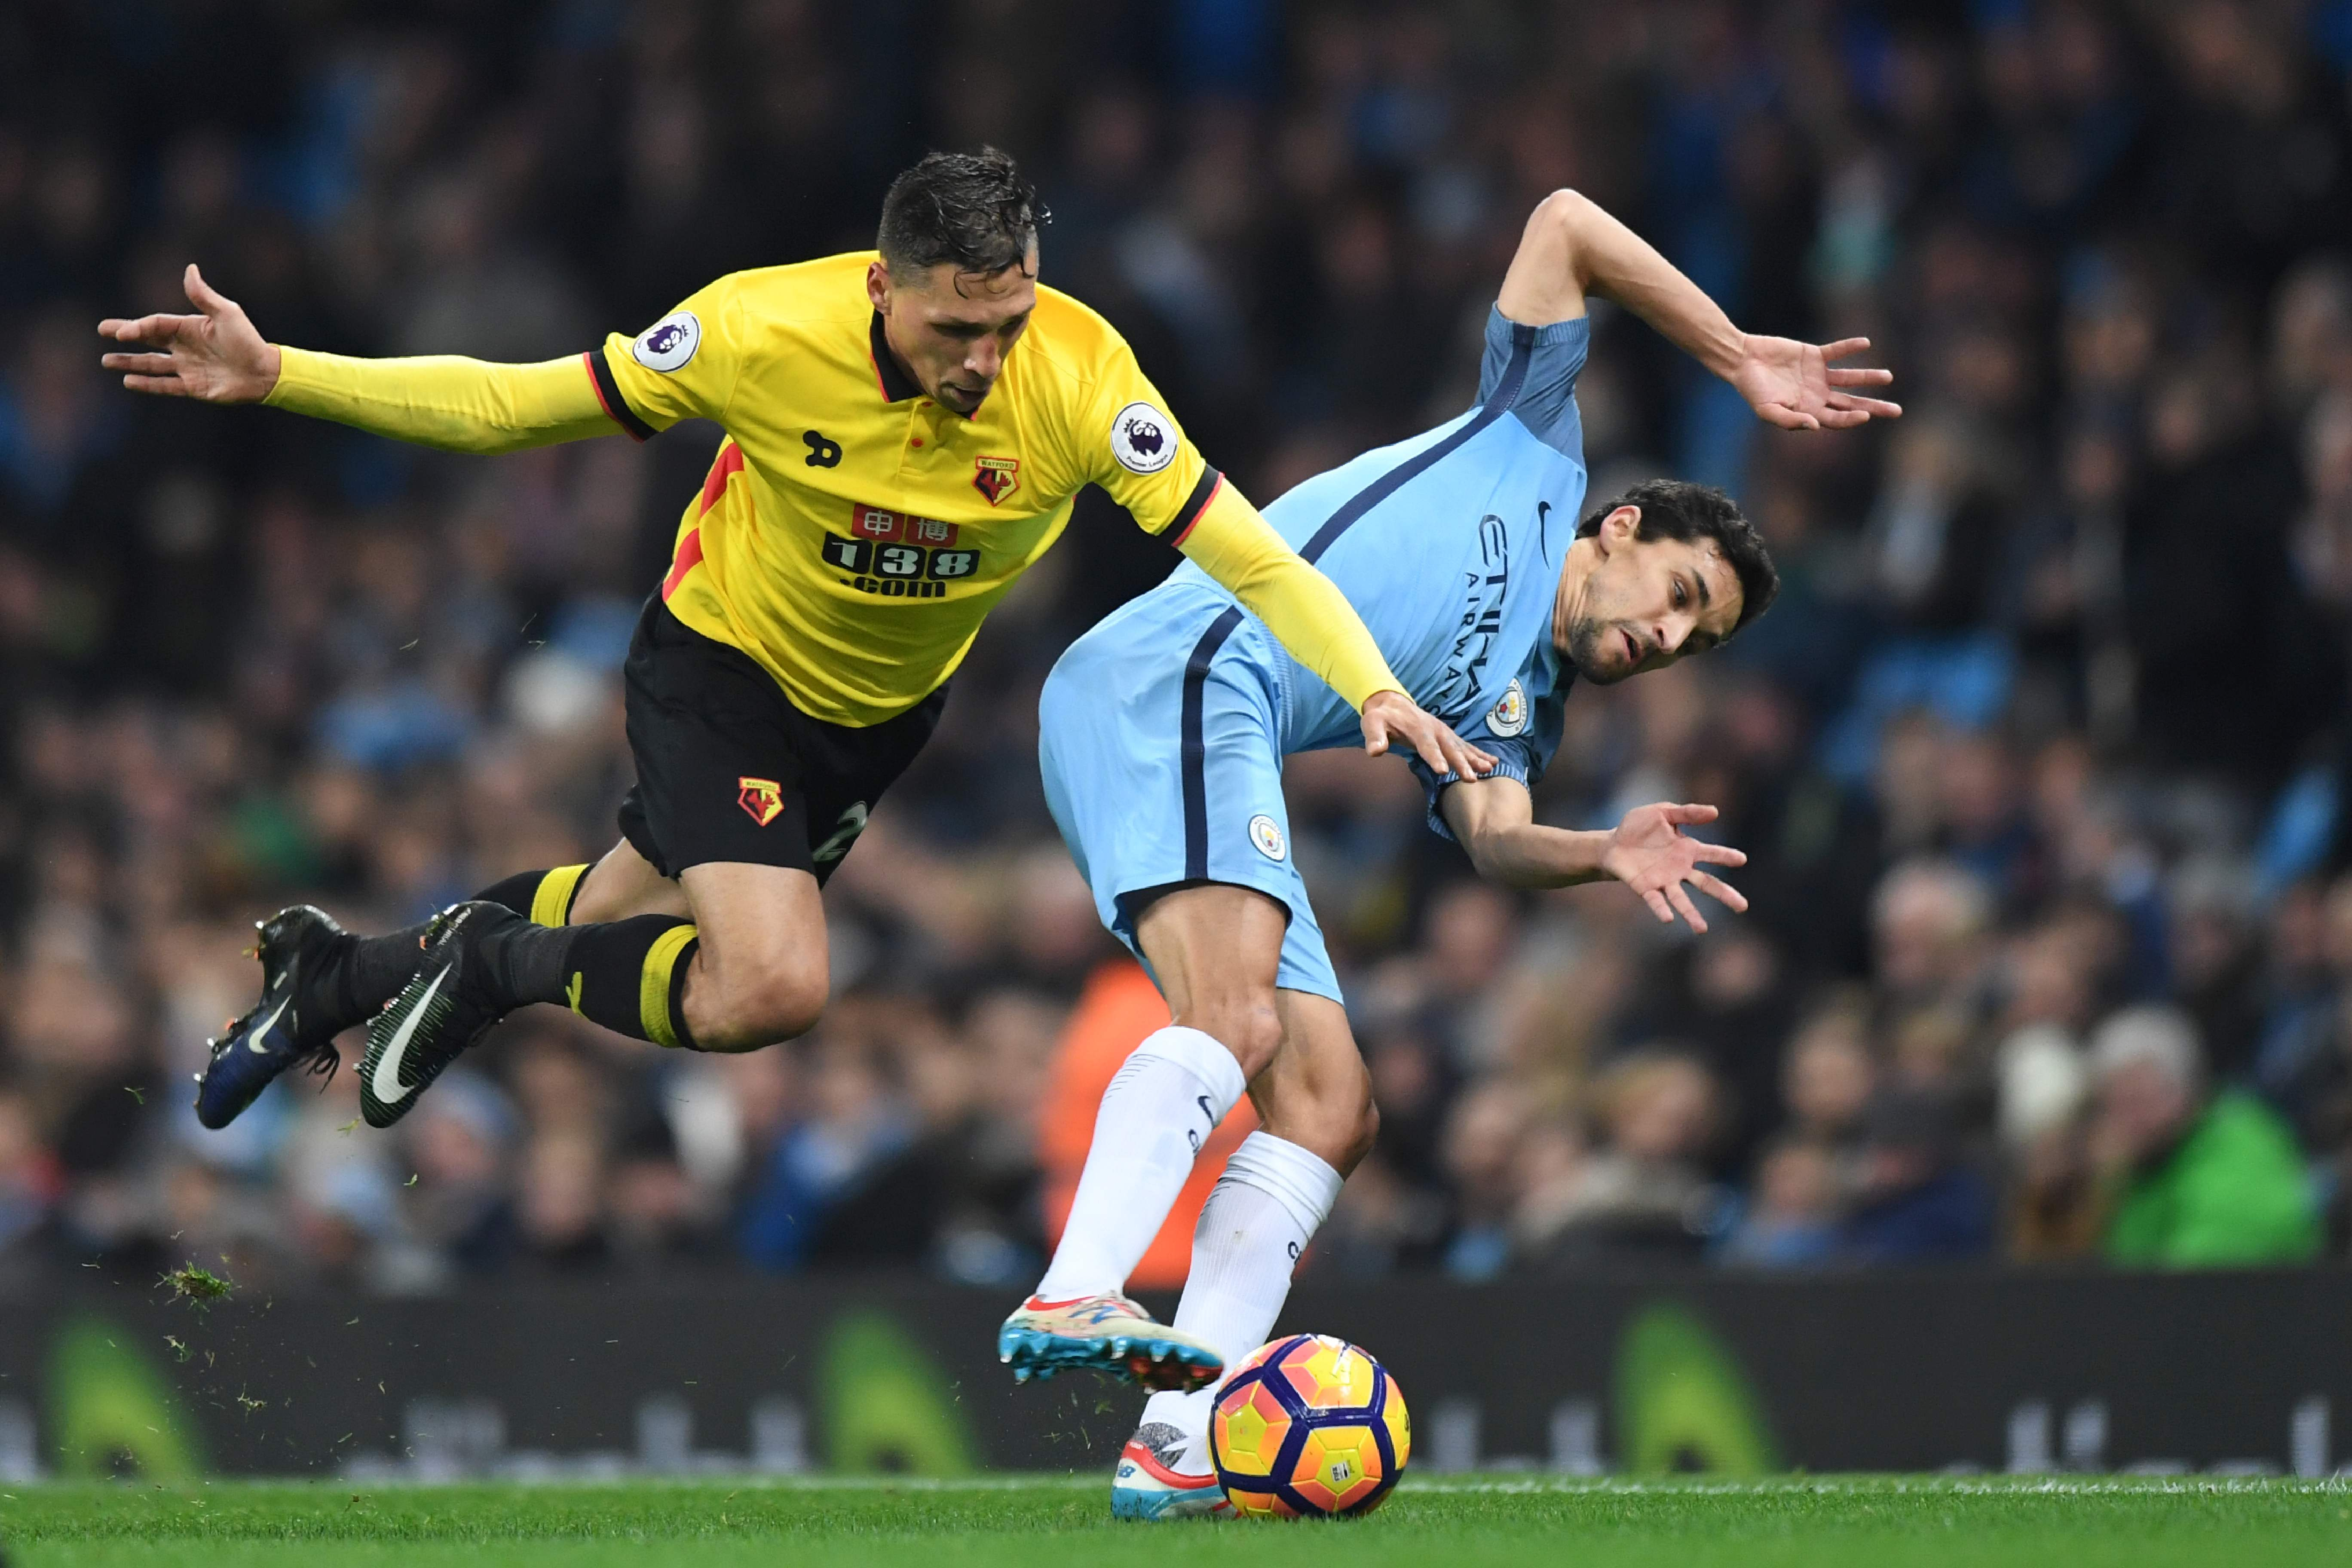 Football: Guardiola expects lengthy injury layoff for Guendogan